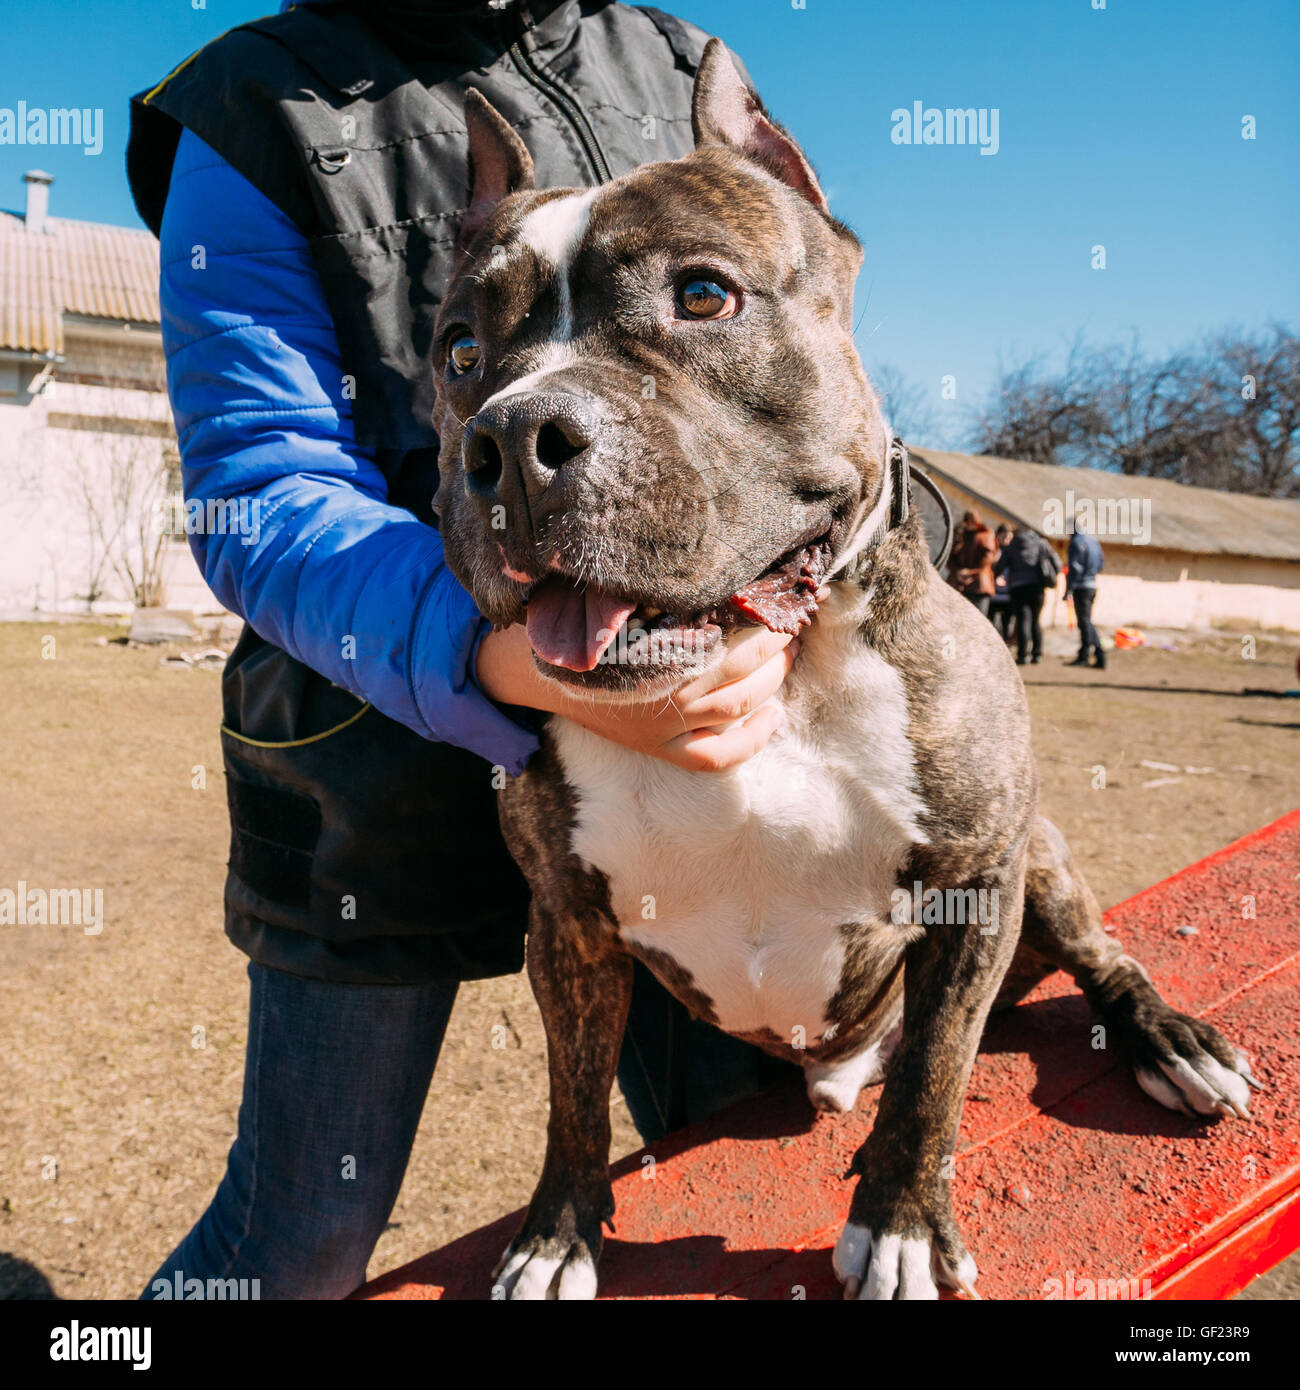 Beautiful Dog American Staffordshire Terrier on Obedience Training Outdoor - Stock Image